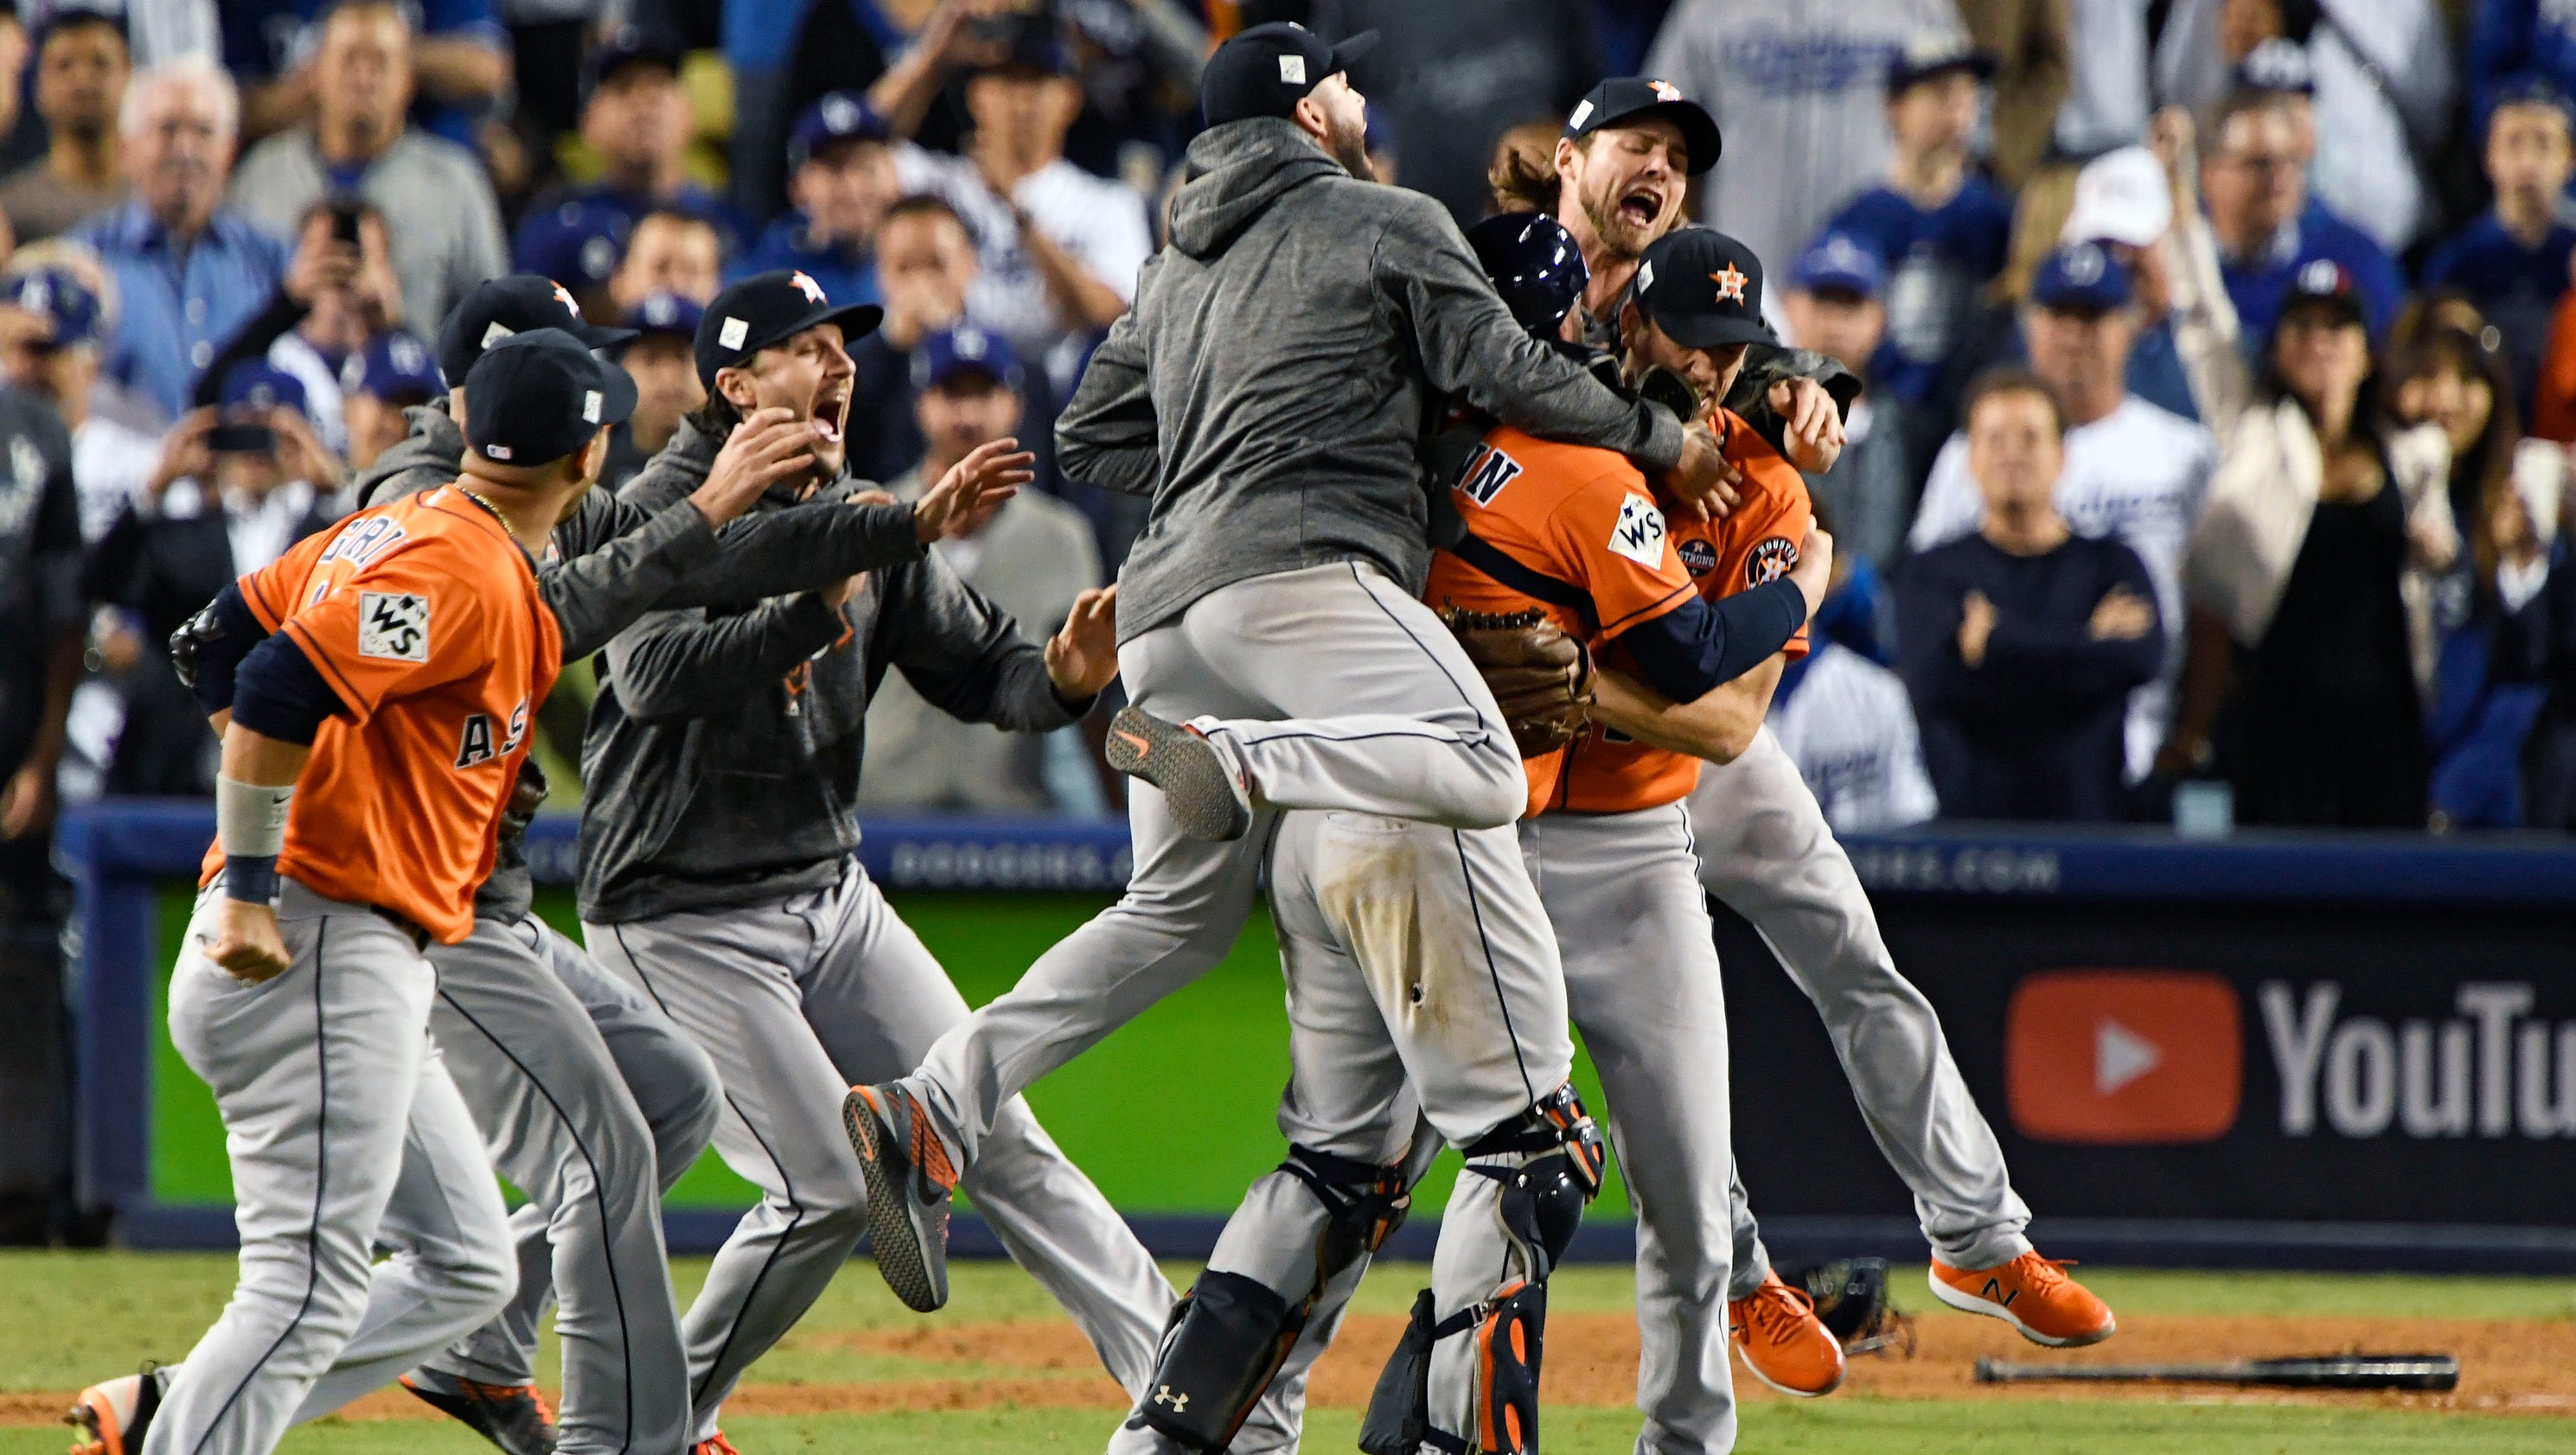 mlb world series essays Customize world series packages online 2018 world series travel packages with world series tickets and hotels in host cities.